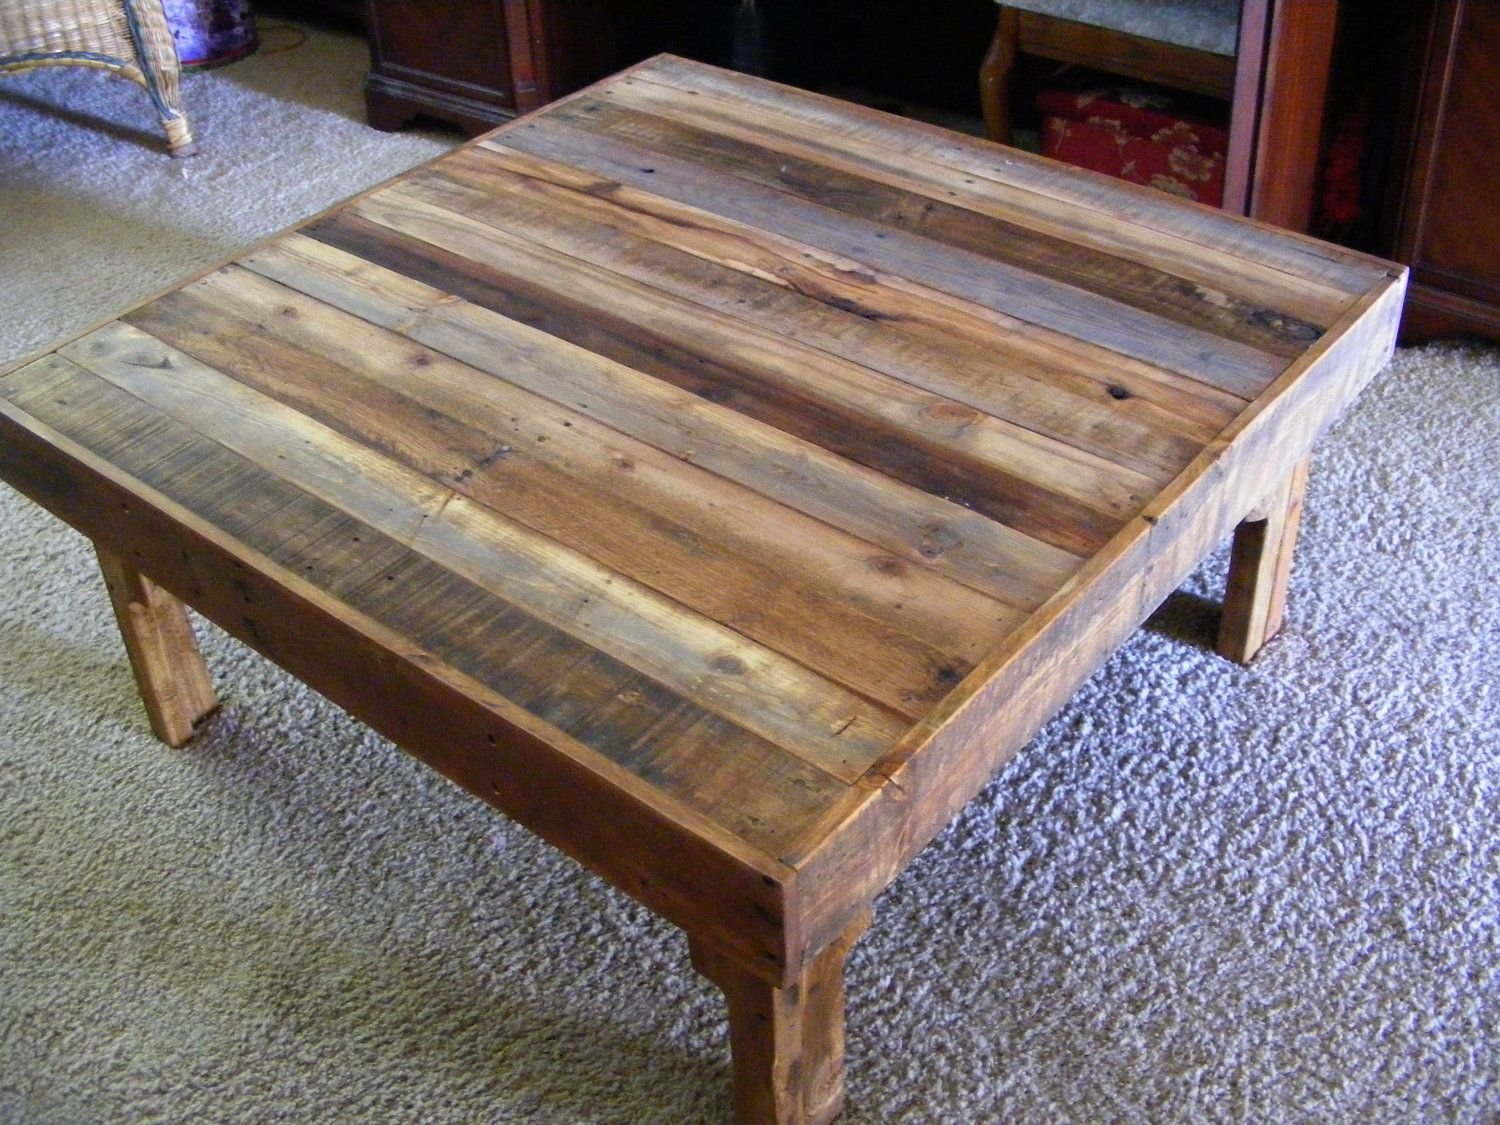 Best Coffee Table Images On Pinterest Coffee Tables Door - Charming vintage diy sawhorse coffee table